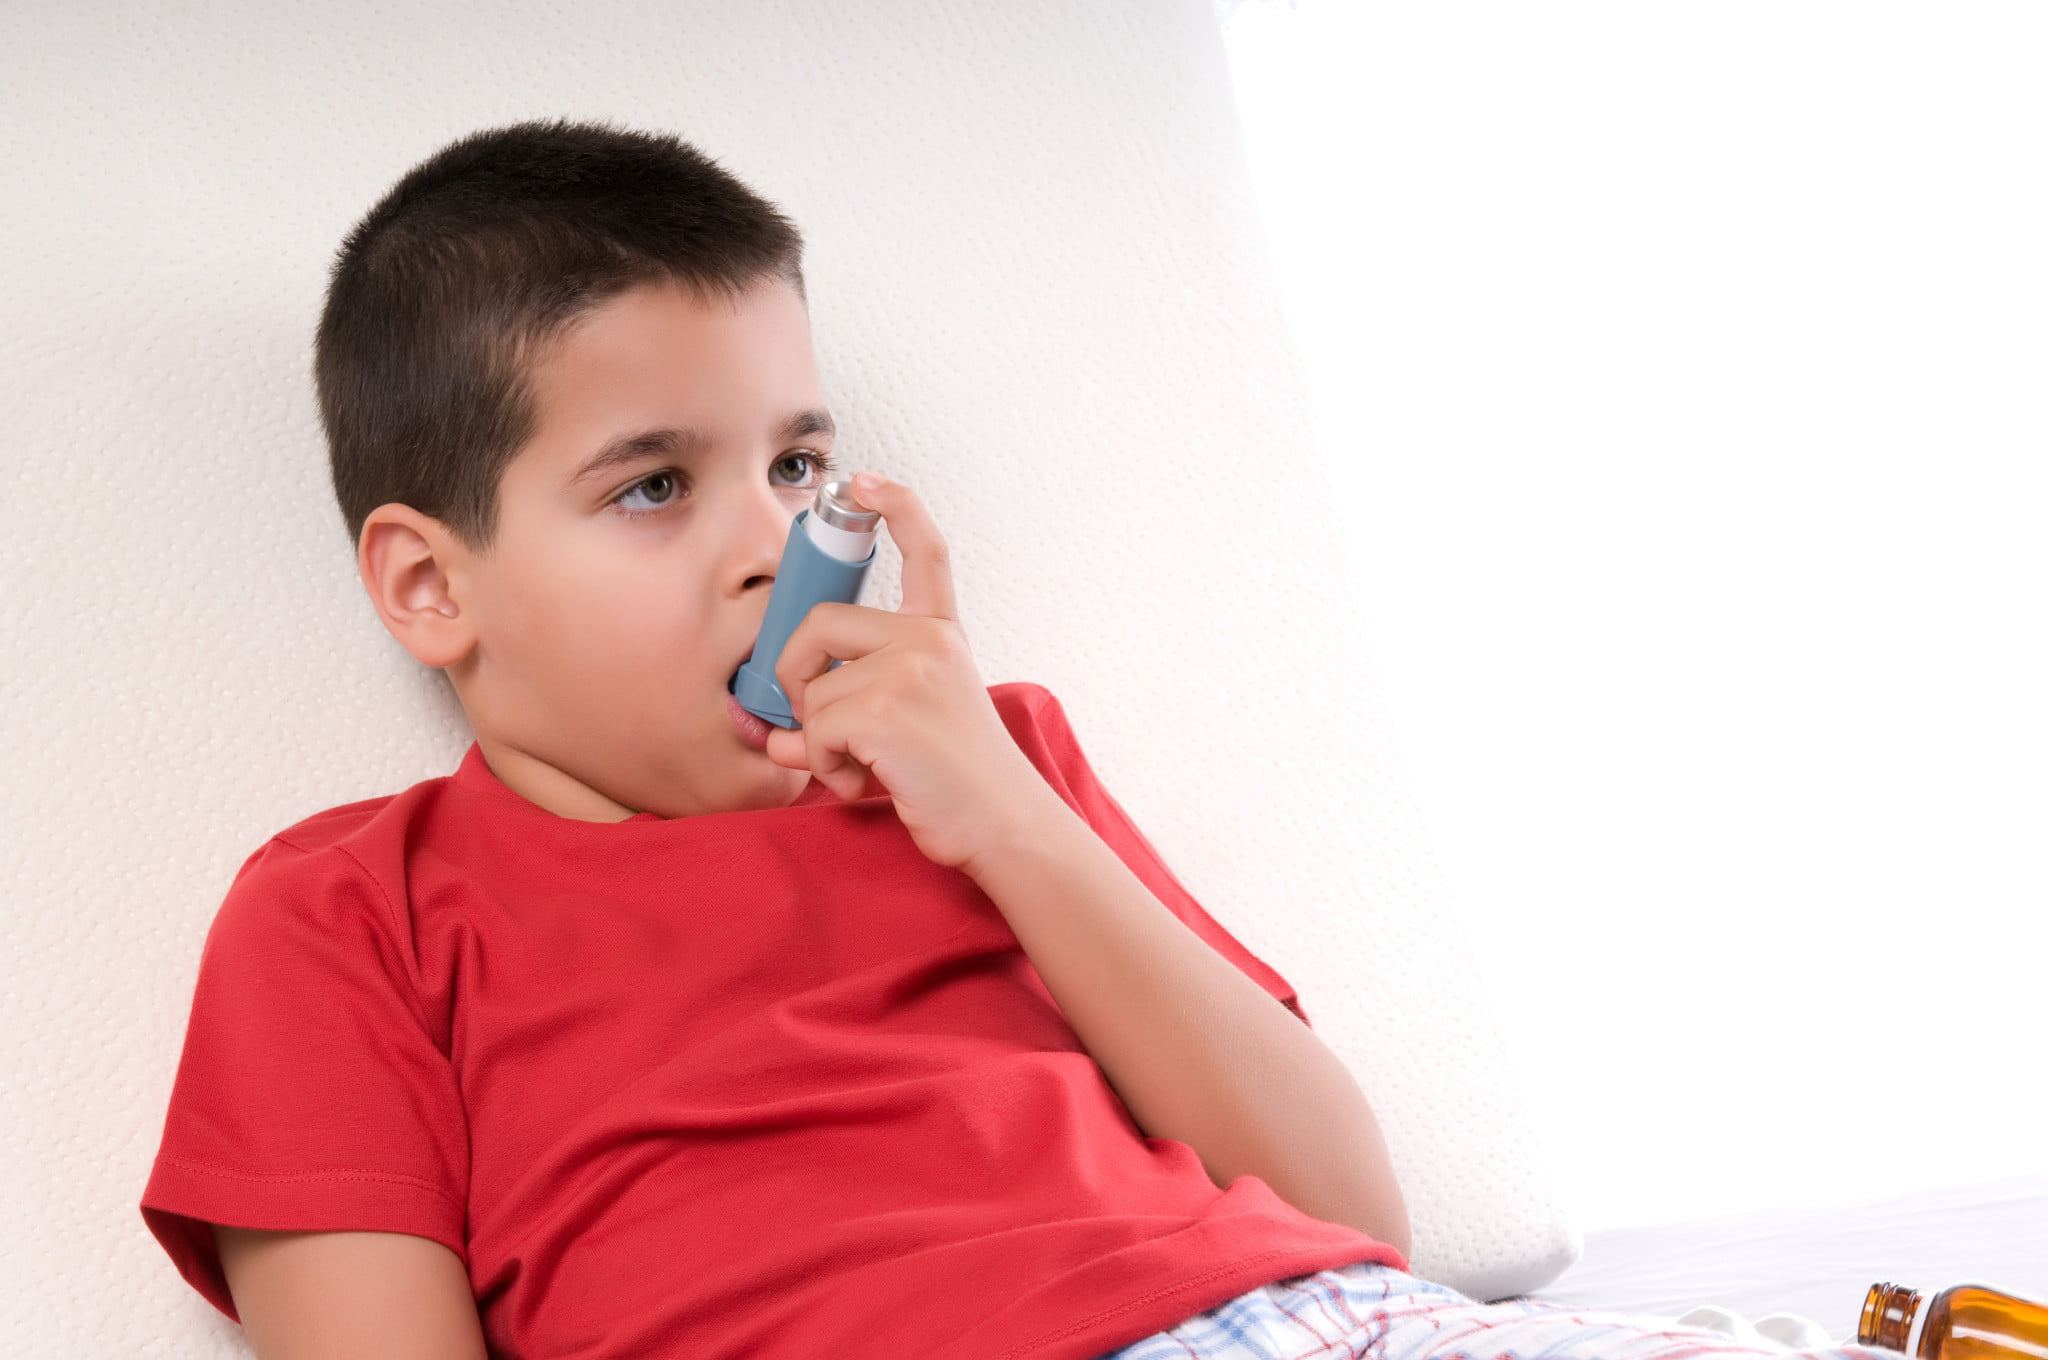 boy wtih asthma uses reliever puffer